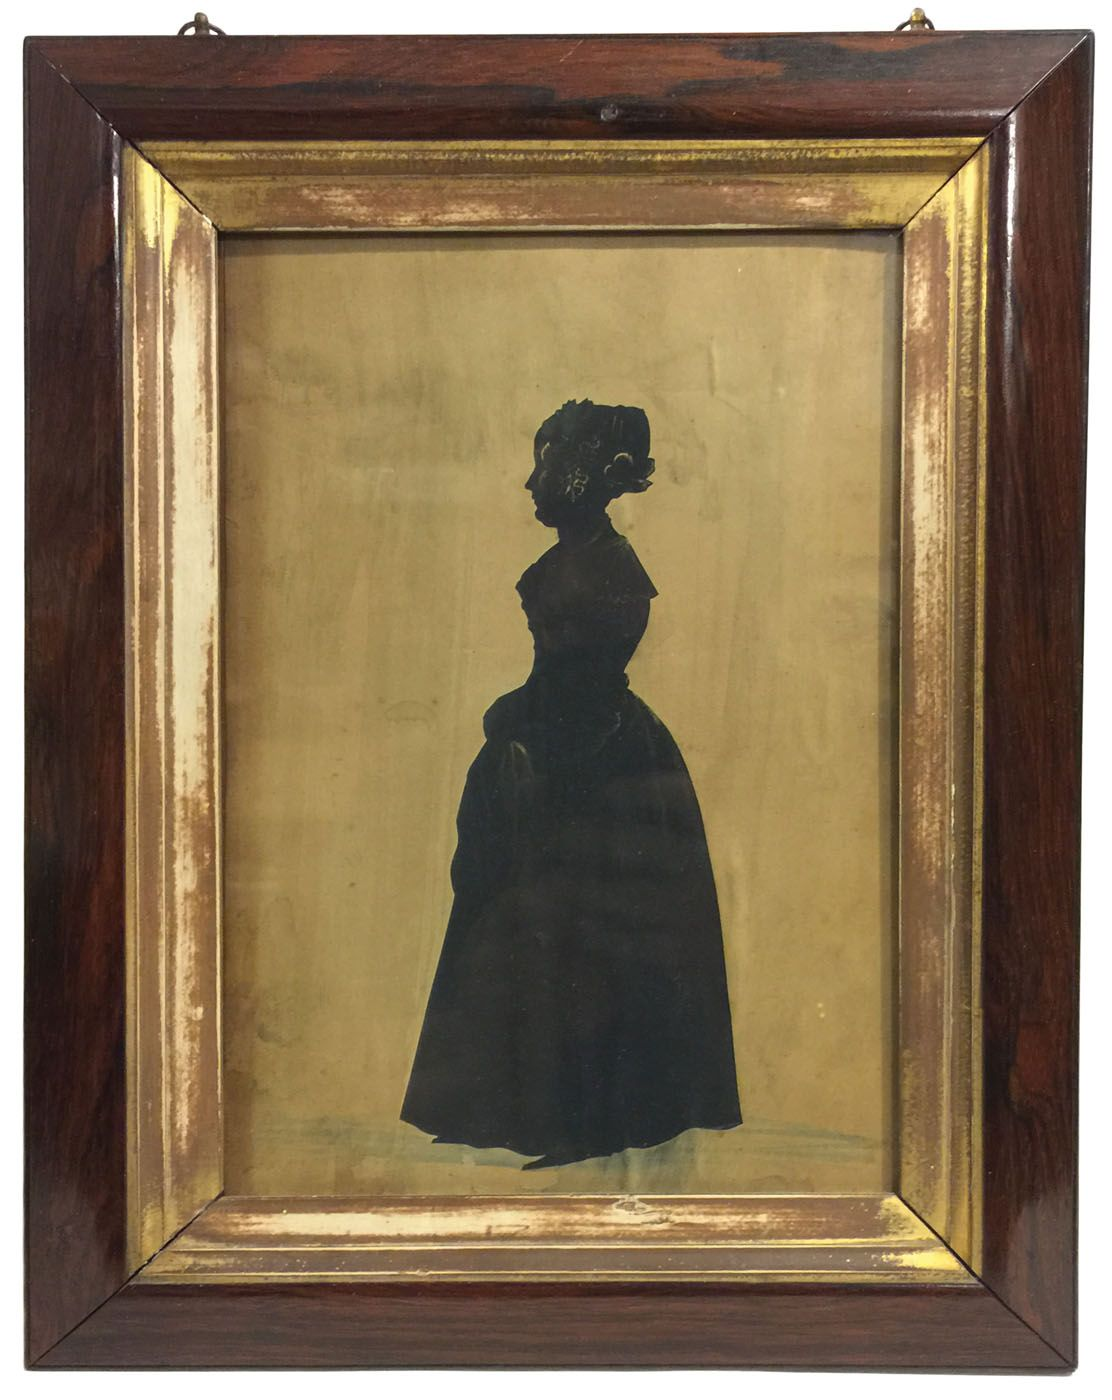 Full-length silhouettes: young lady facing left, in black with gilt highlights, attributed to Samuel Metford (1810-1896), (note: refer to Shades of Our Ancestors, p. 112), rosewood frame with gilt liner, 10 1/2″ x 7″ (sight);